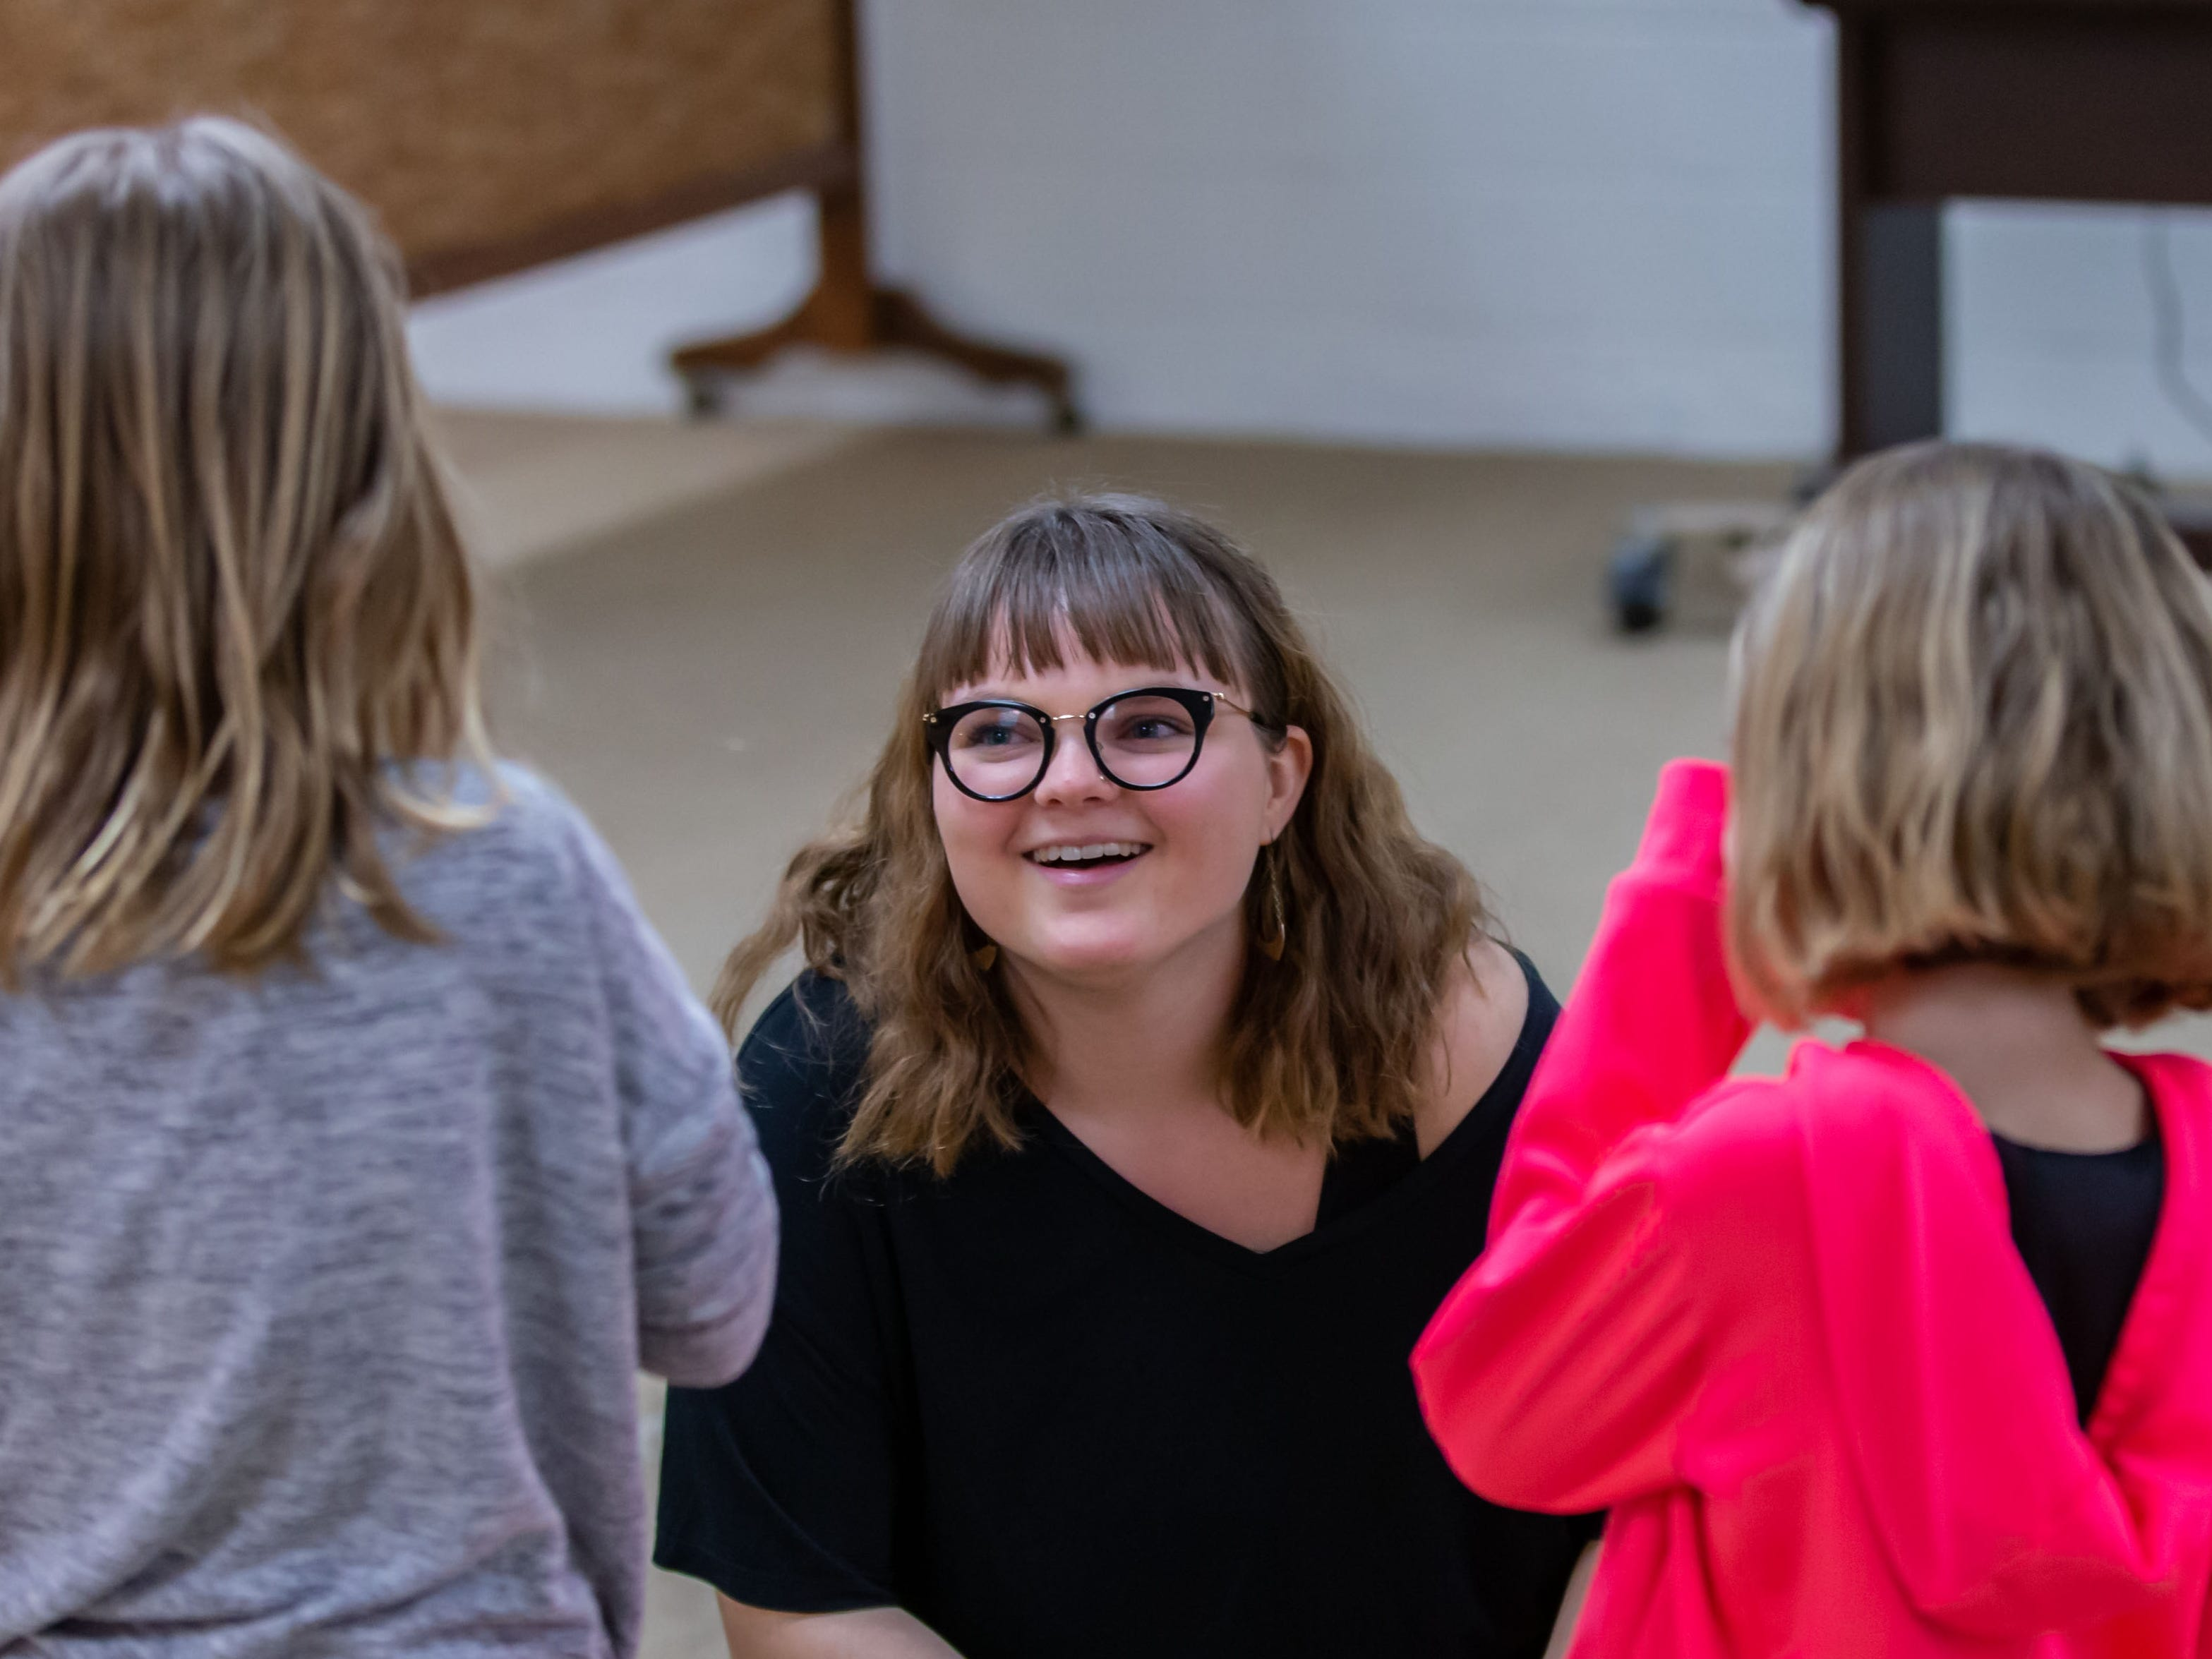 Lake Country Playhouse teaching artist Callyn Klohn works with youngsters during a free, Open House theatre class in Hartland on Monday, Jan. 7, 2019.